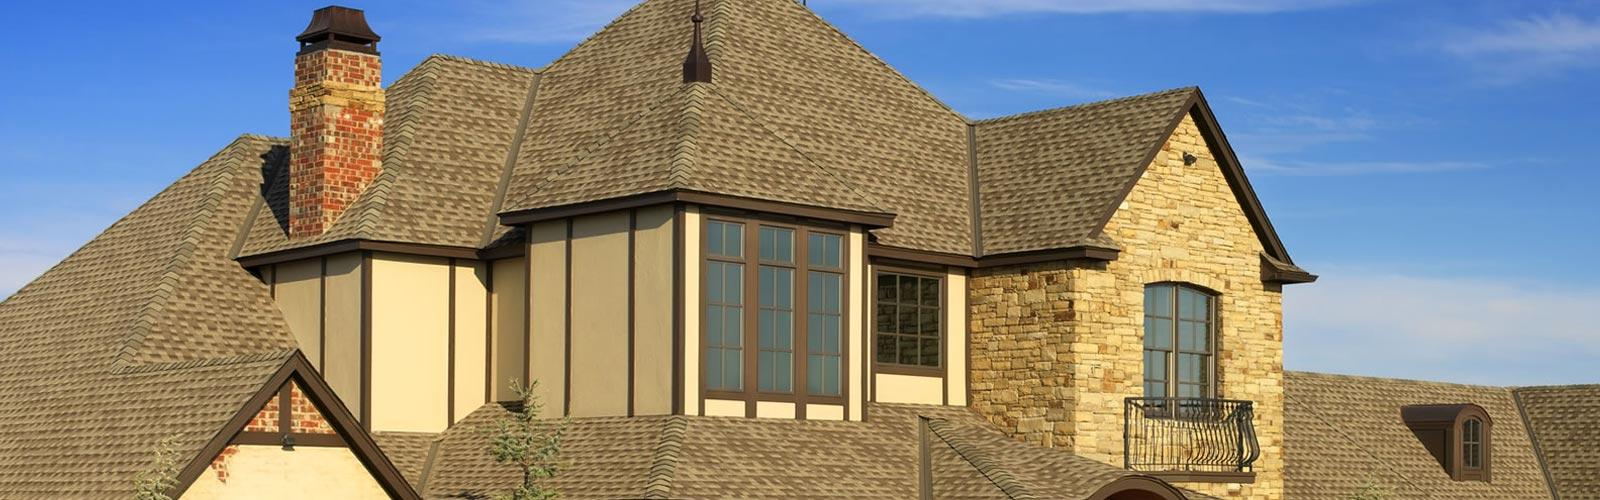 Quality Roofing by Larry  Images